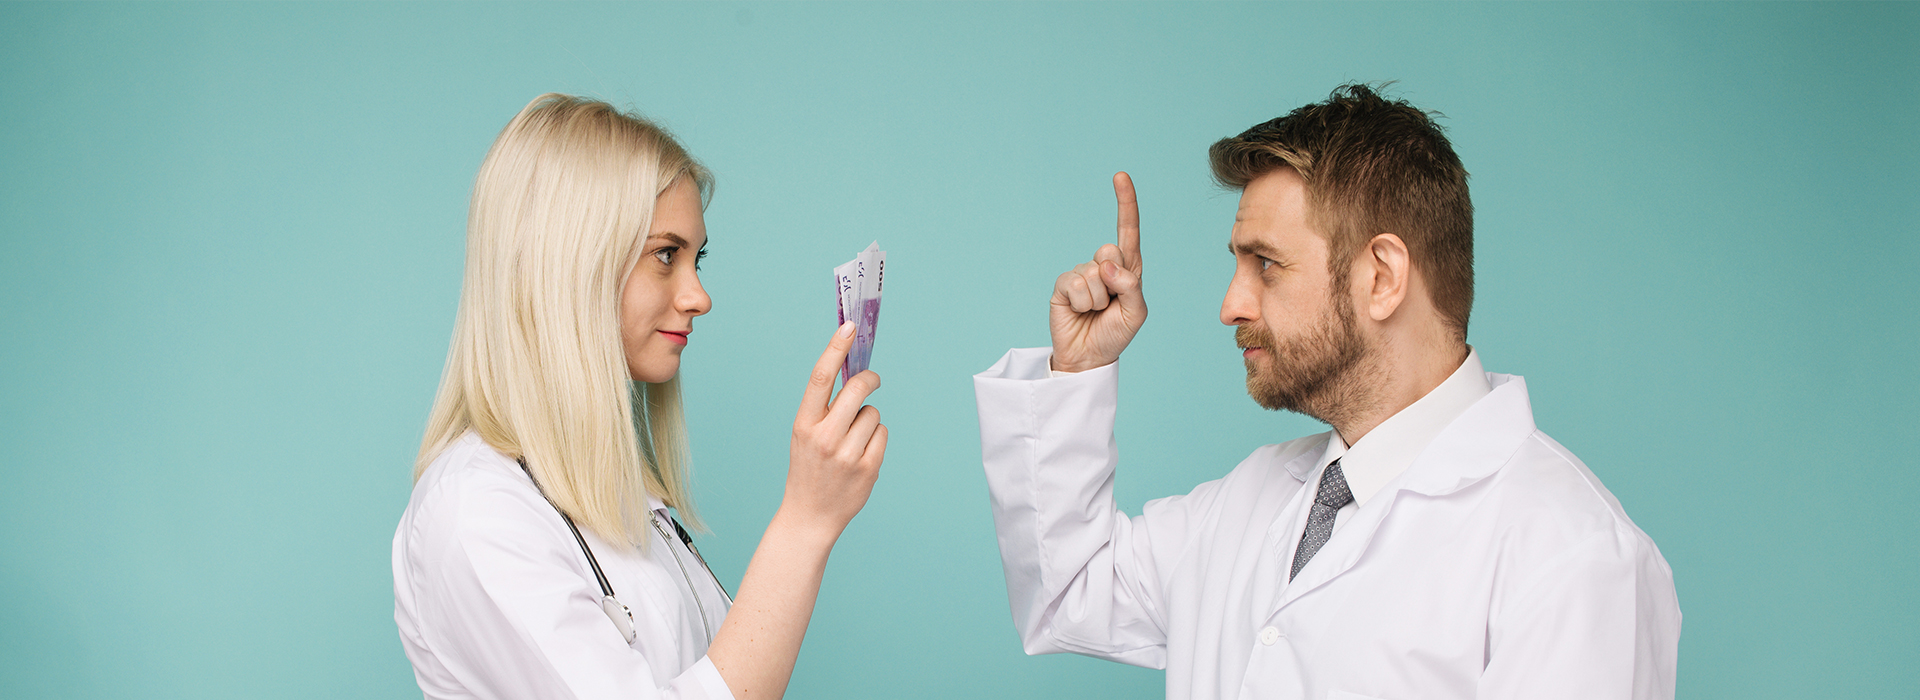 Female nurse and male nurse talking about gender pay gap